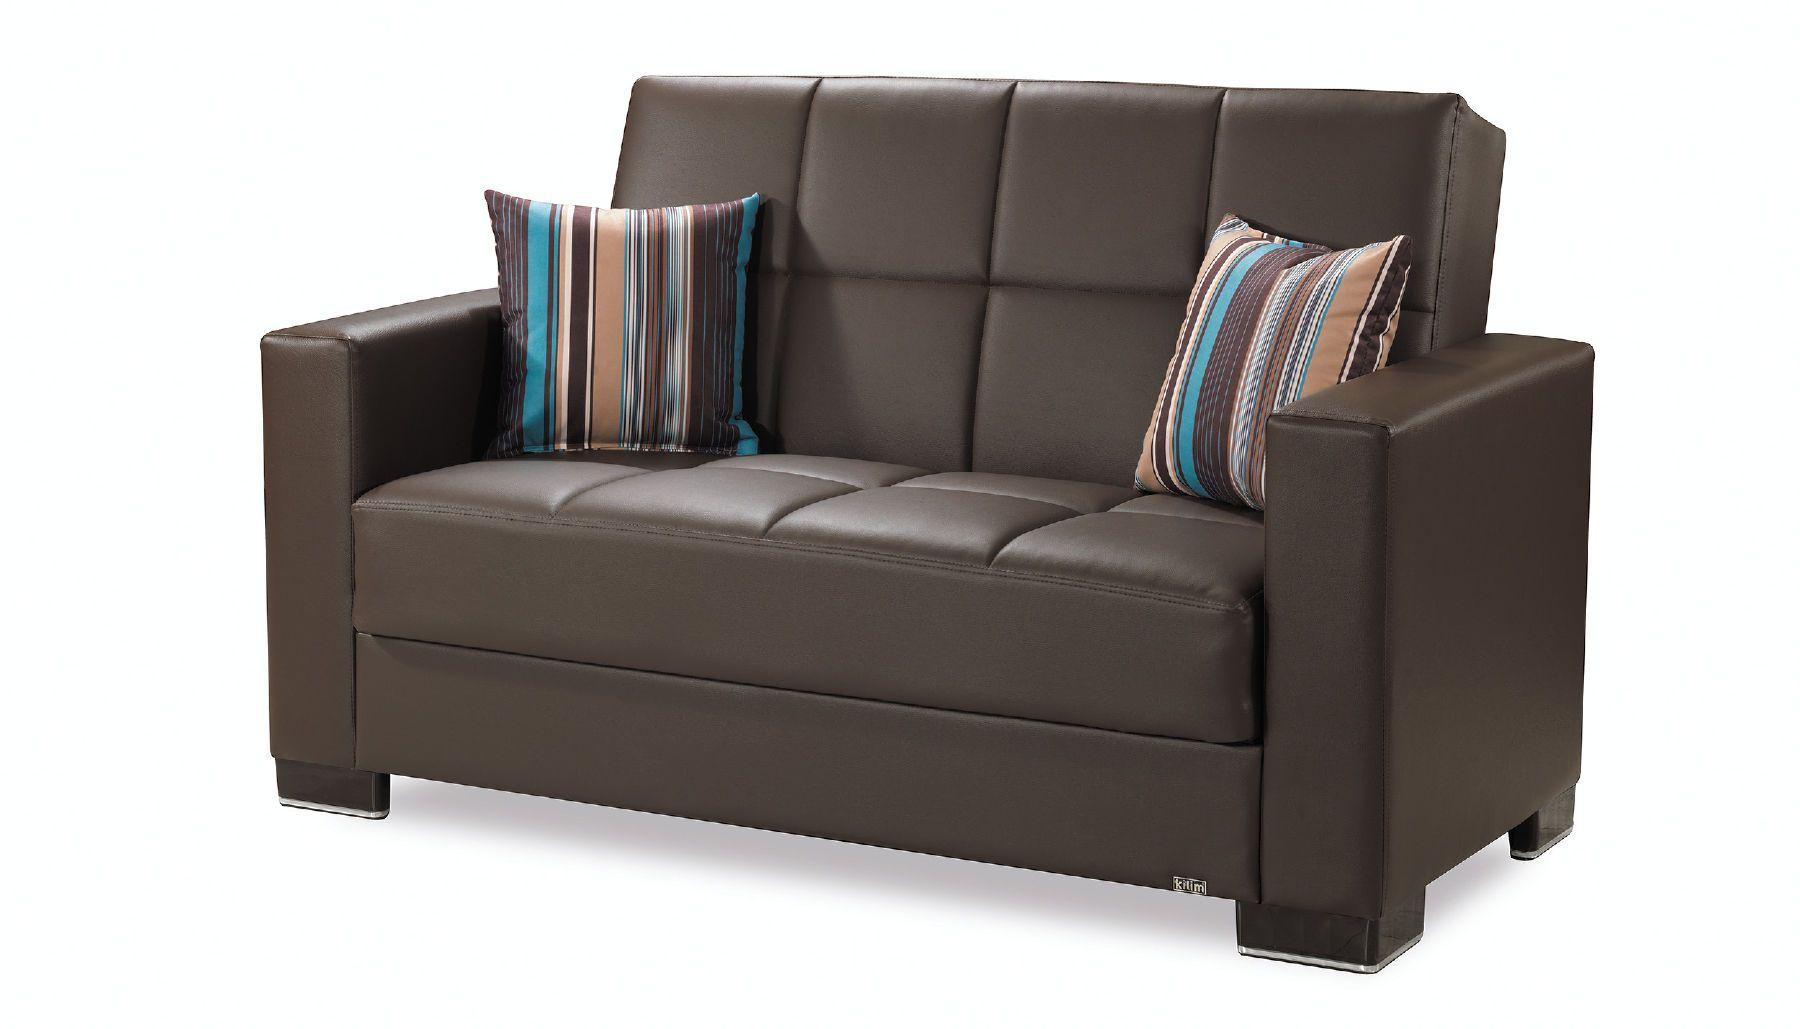 Outstanding Casamode Armada Brown Pu Leatherette Loveseat W Storage Pabps2019 Chair Design Images Pabps2019Com